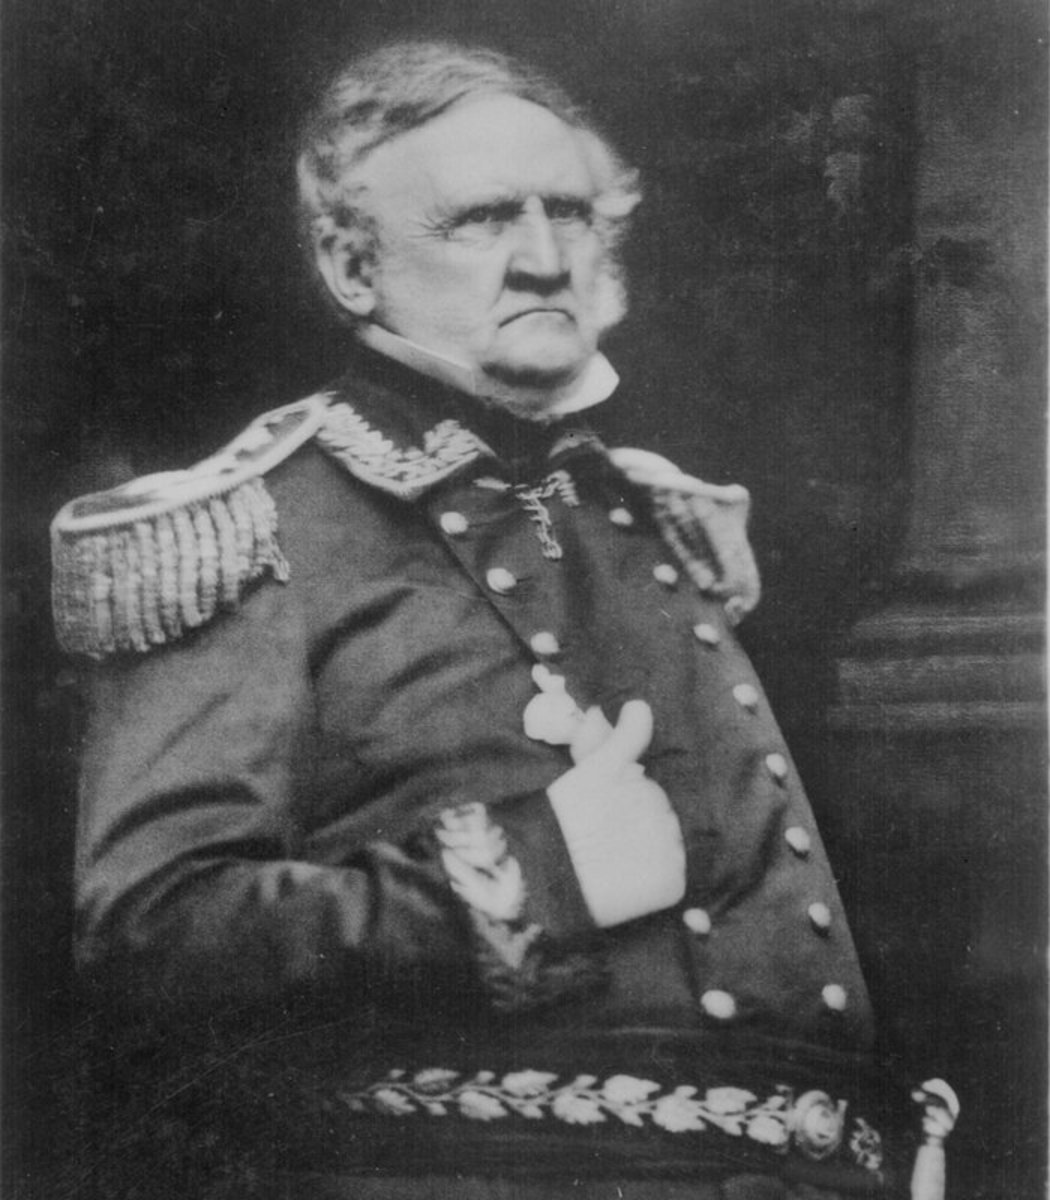 Lt. General Winfield Scott